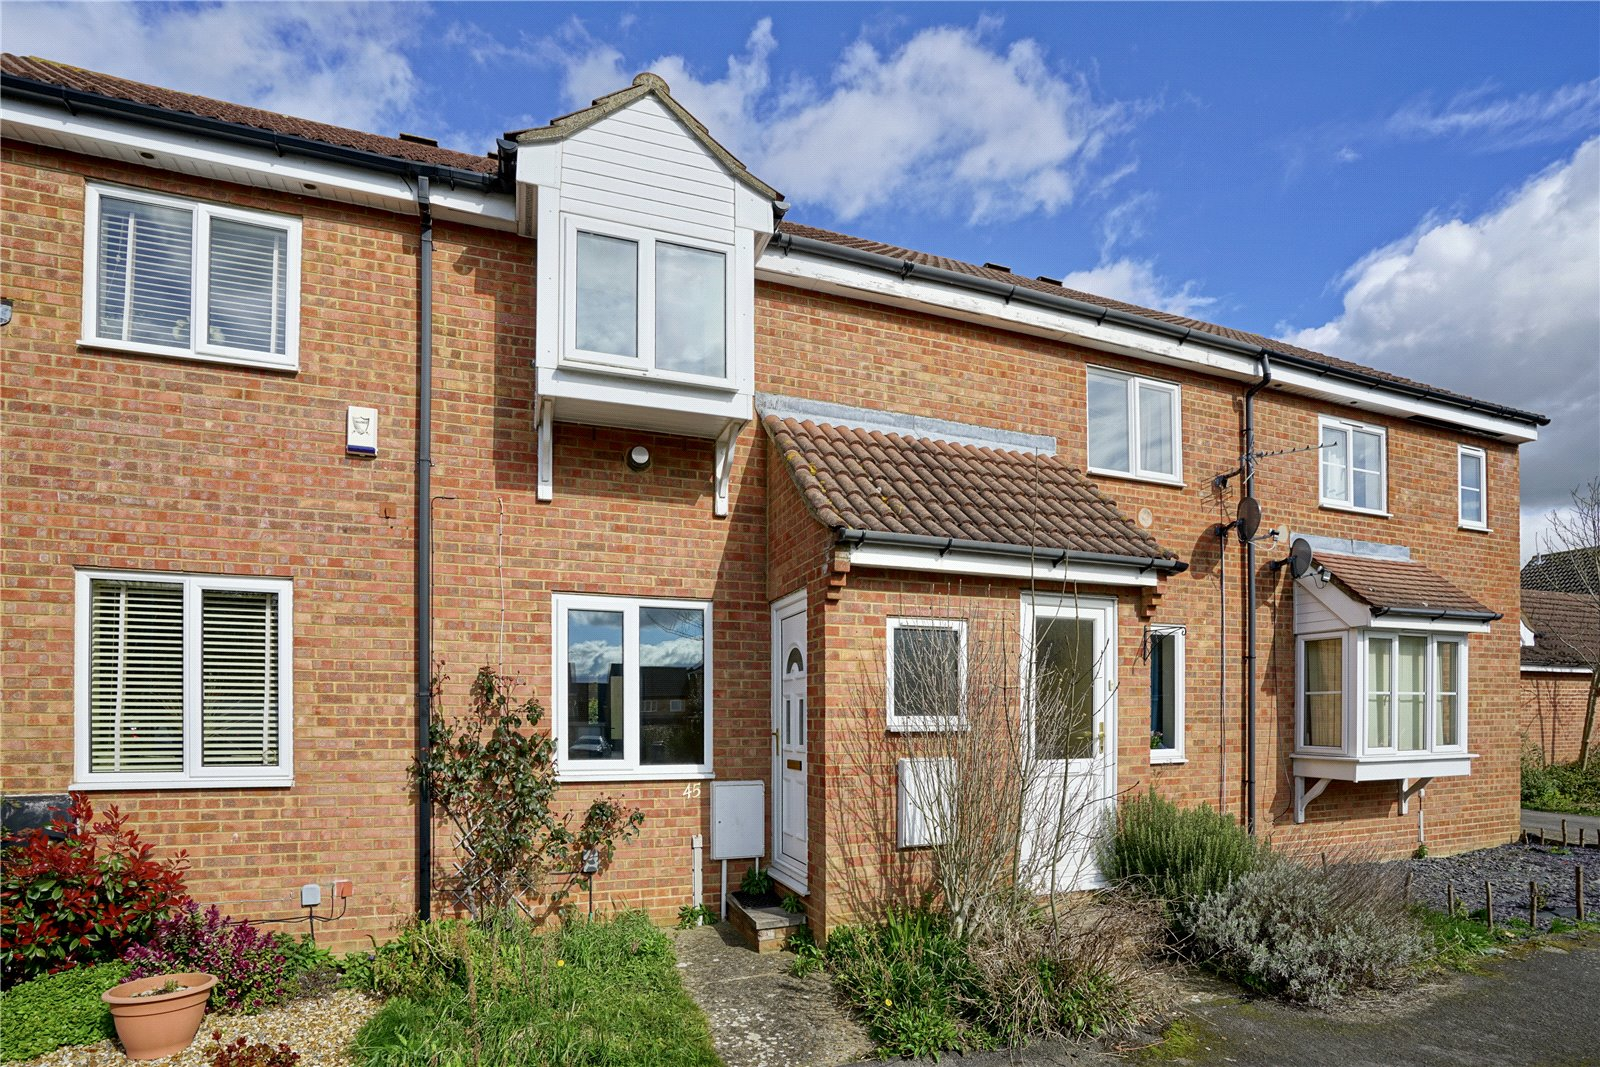 2 bed house for sale in Eaton Socon, PE19